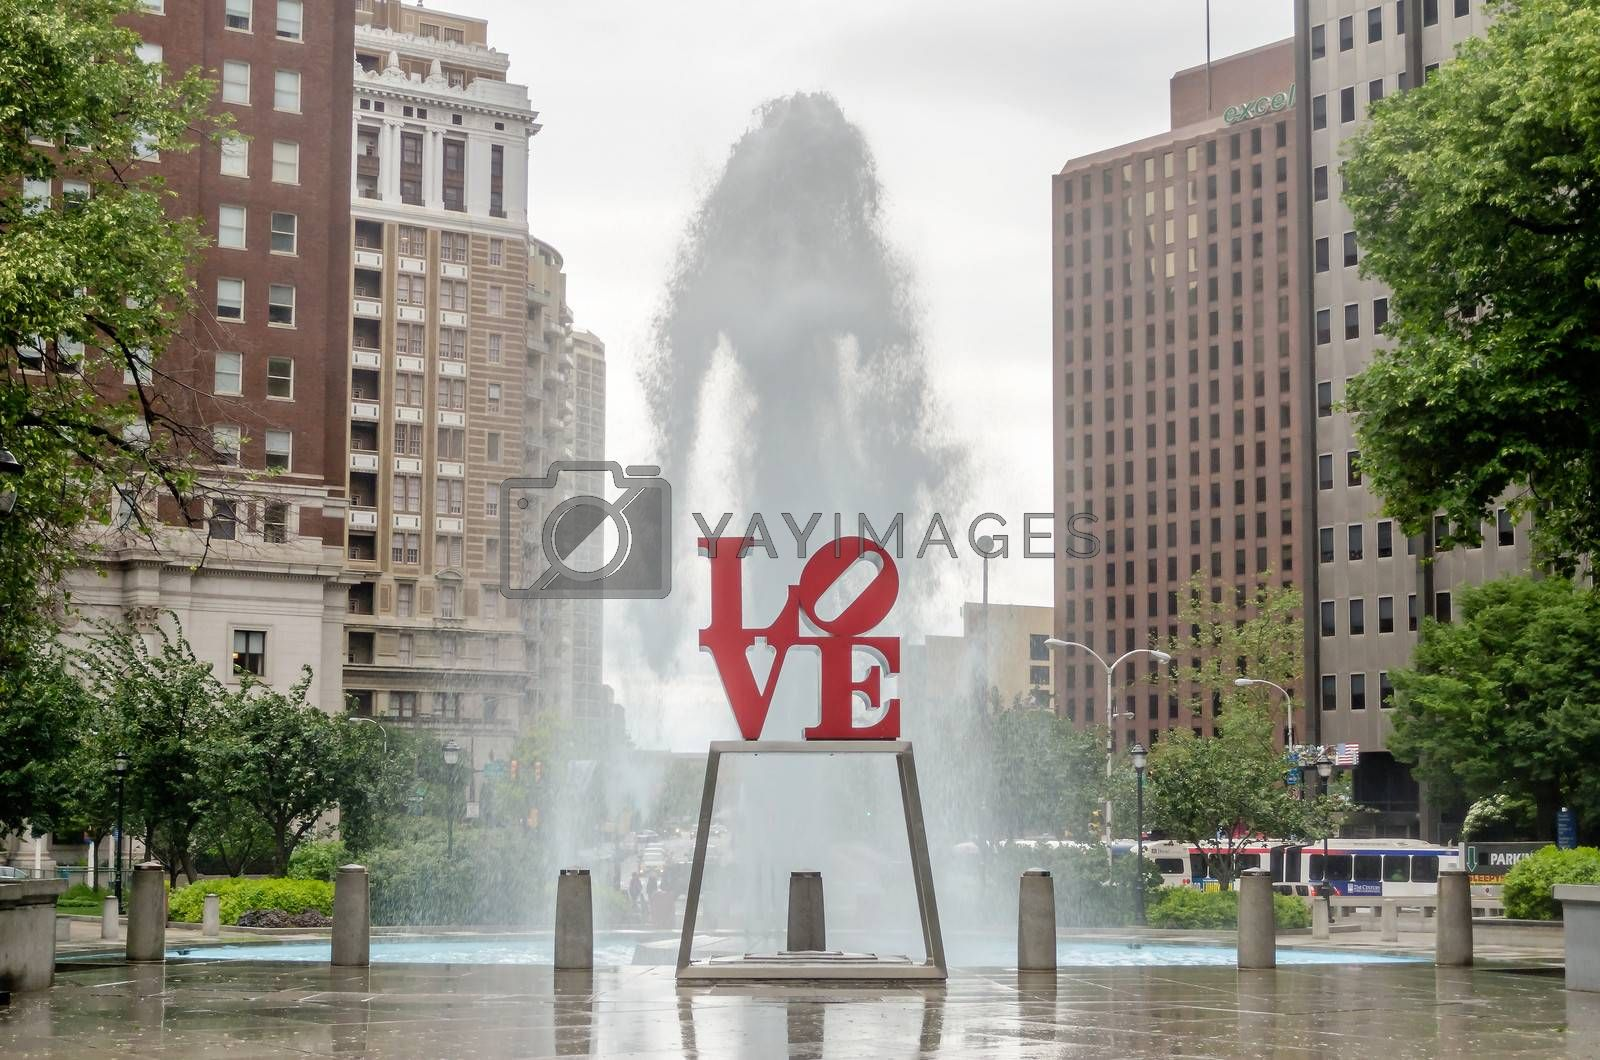 Love Statue in Philadelphia, with scenic fountain against a cloudy sky